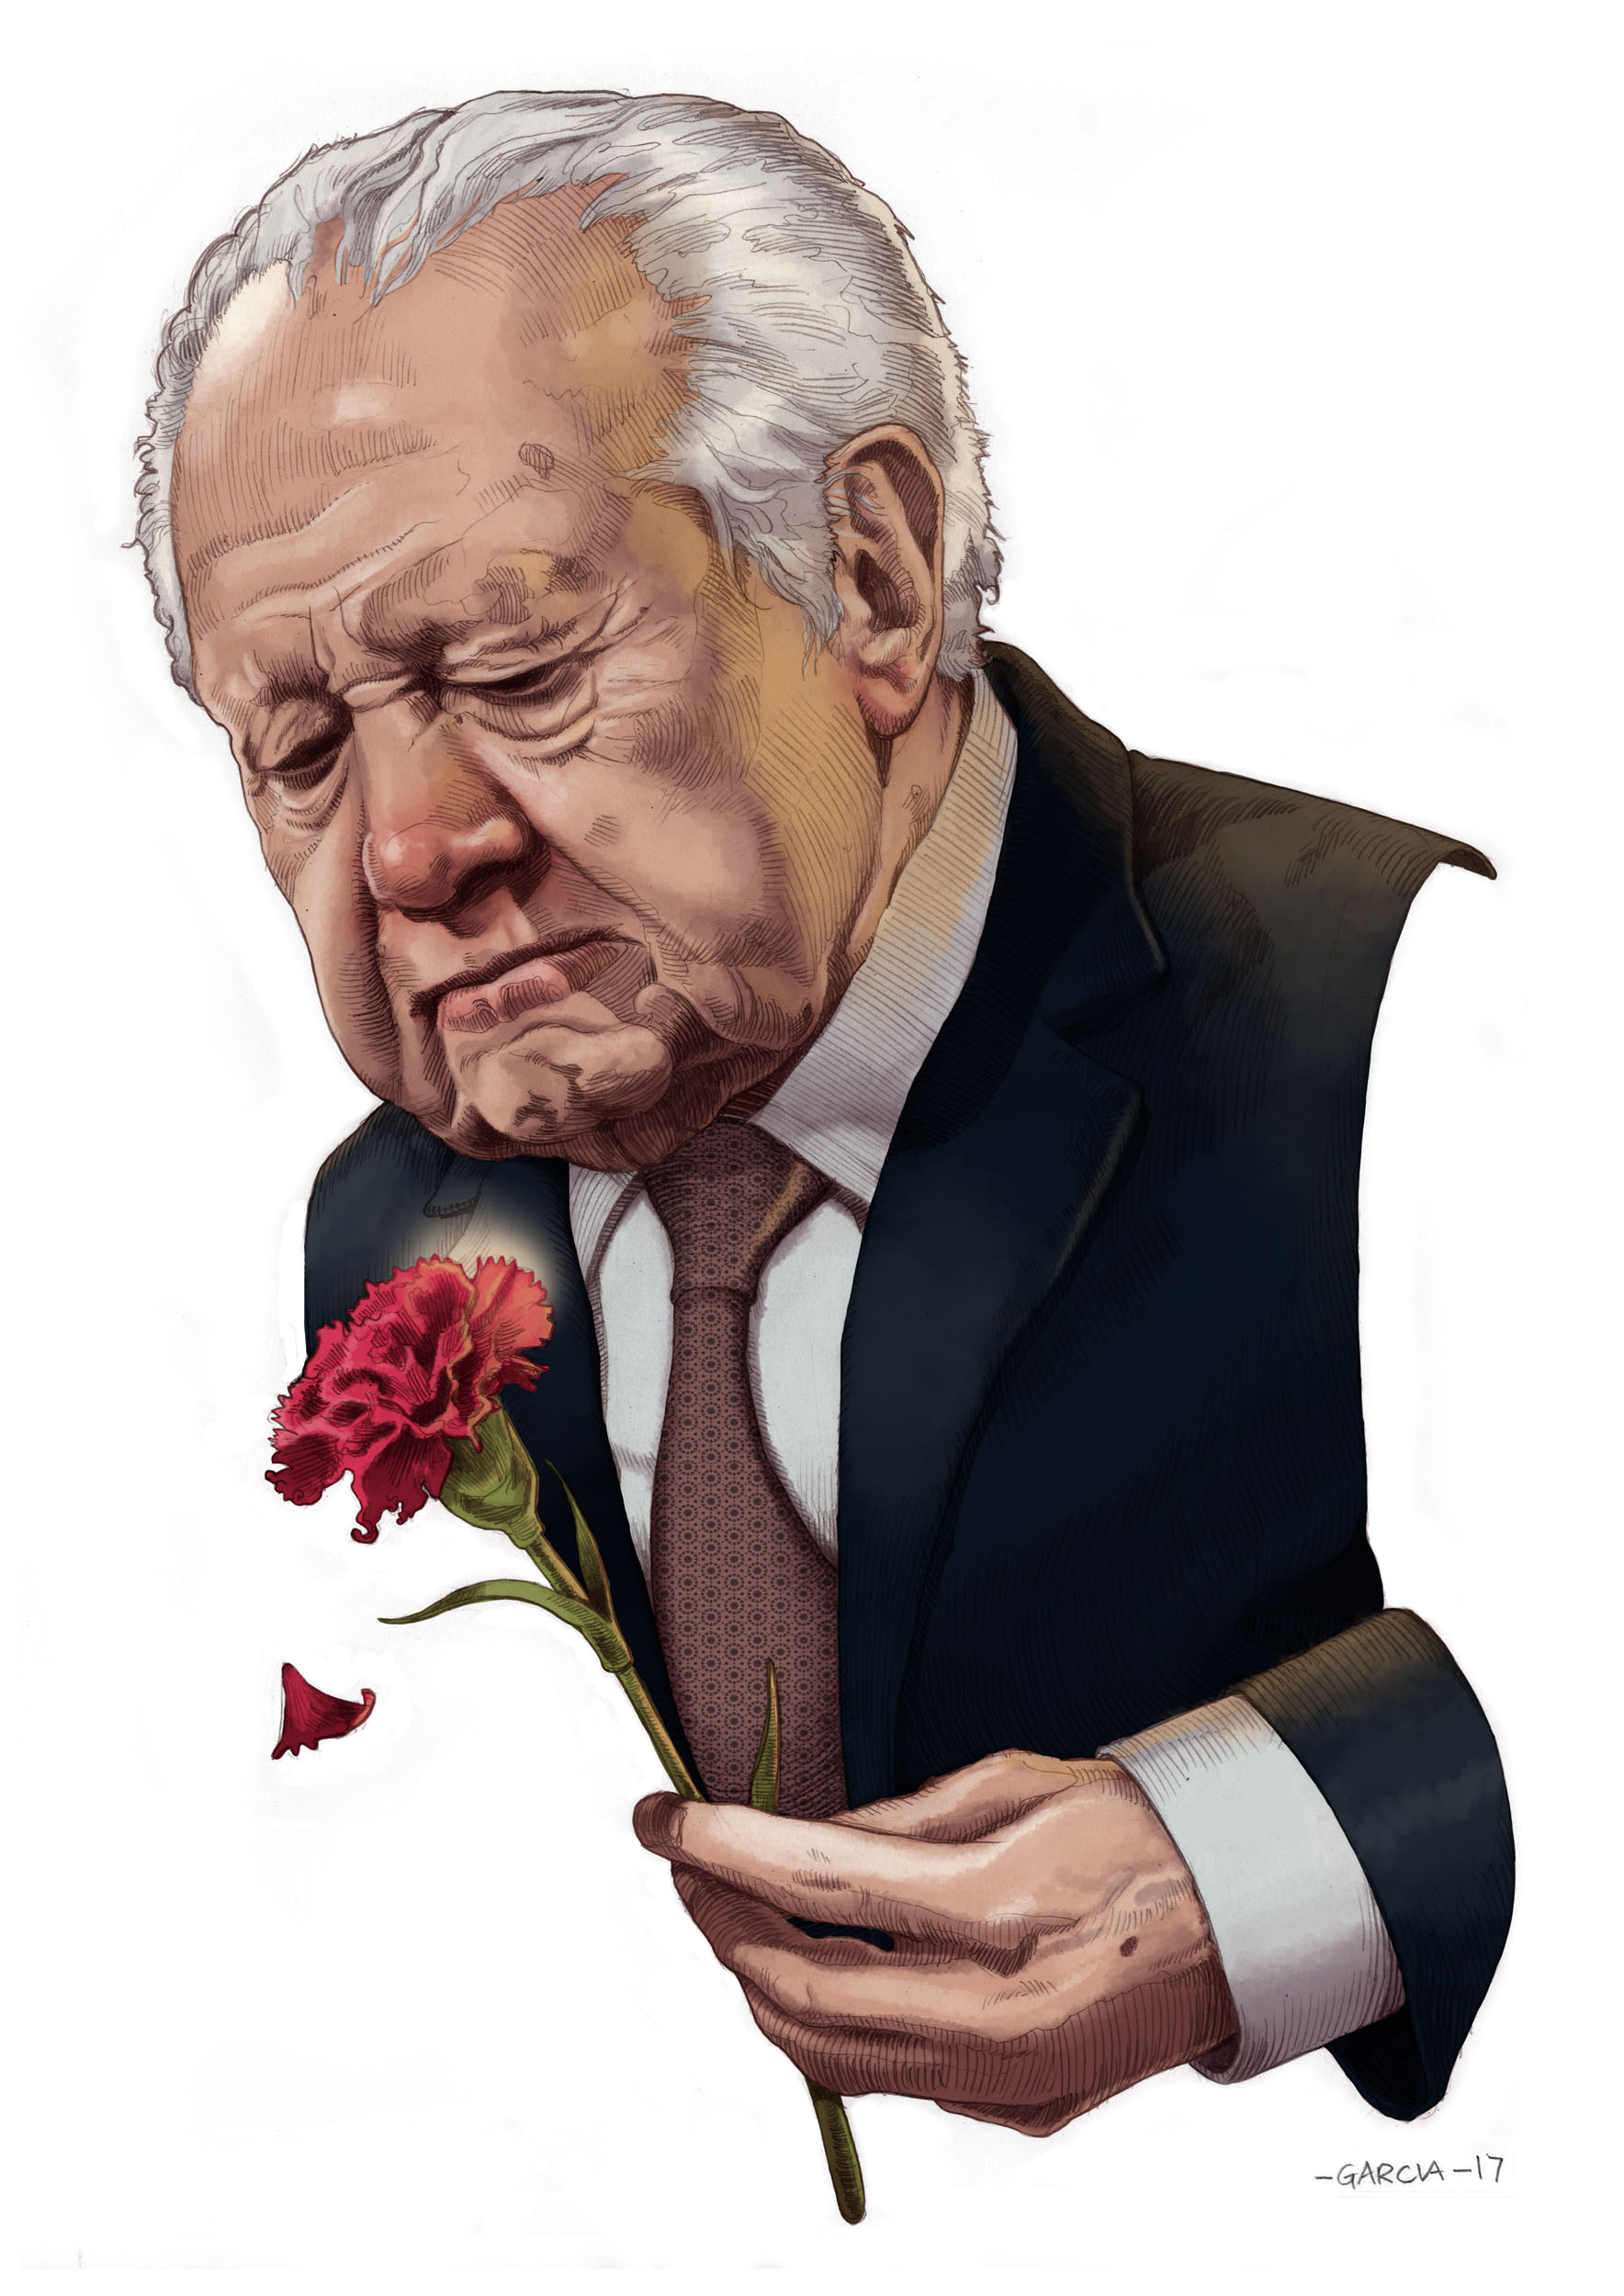 Daniel Garcia Art Illustration Mario Soares 25 de Abril Cravo Morte Funeral 01